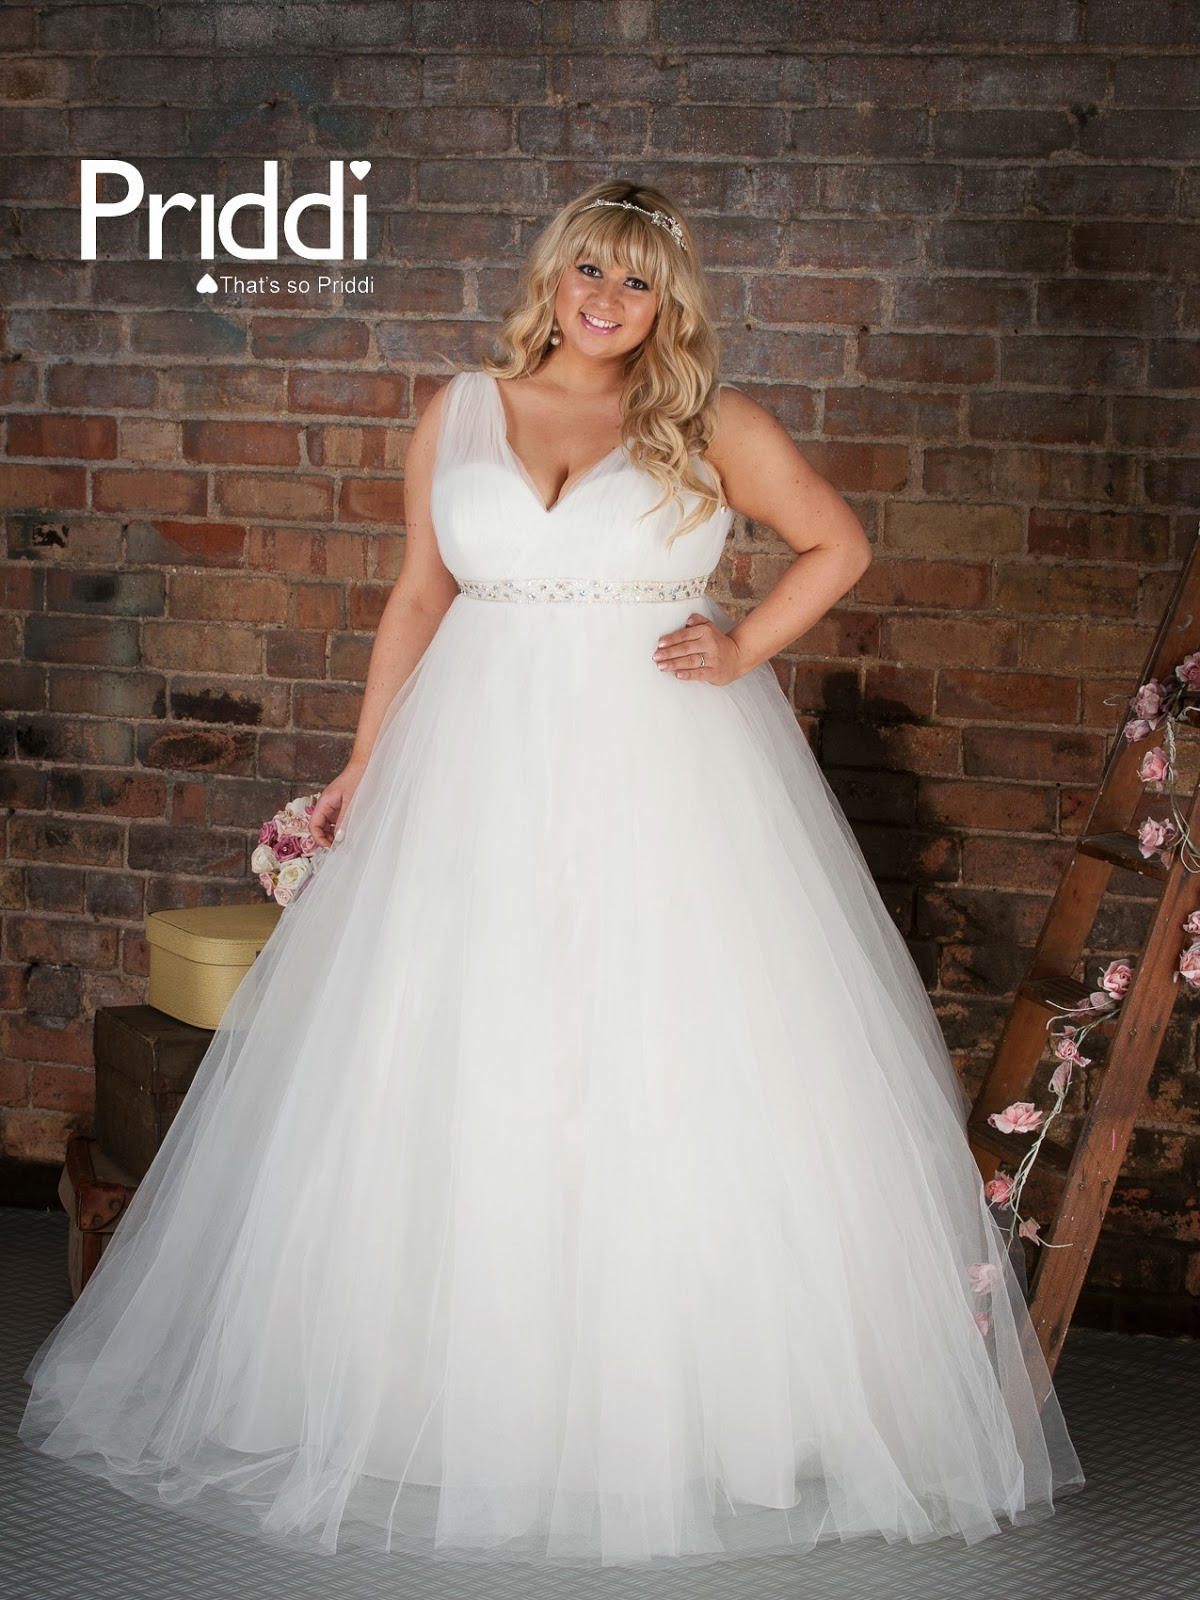 Prom hairstyles for ball gowns gown and dress gallery for Ball gown plus size wedding dresses